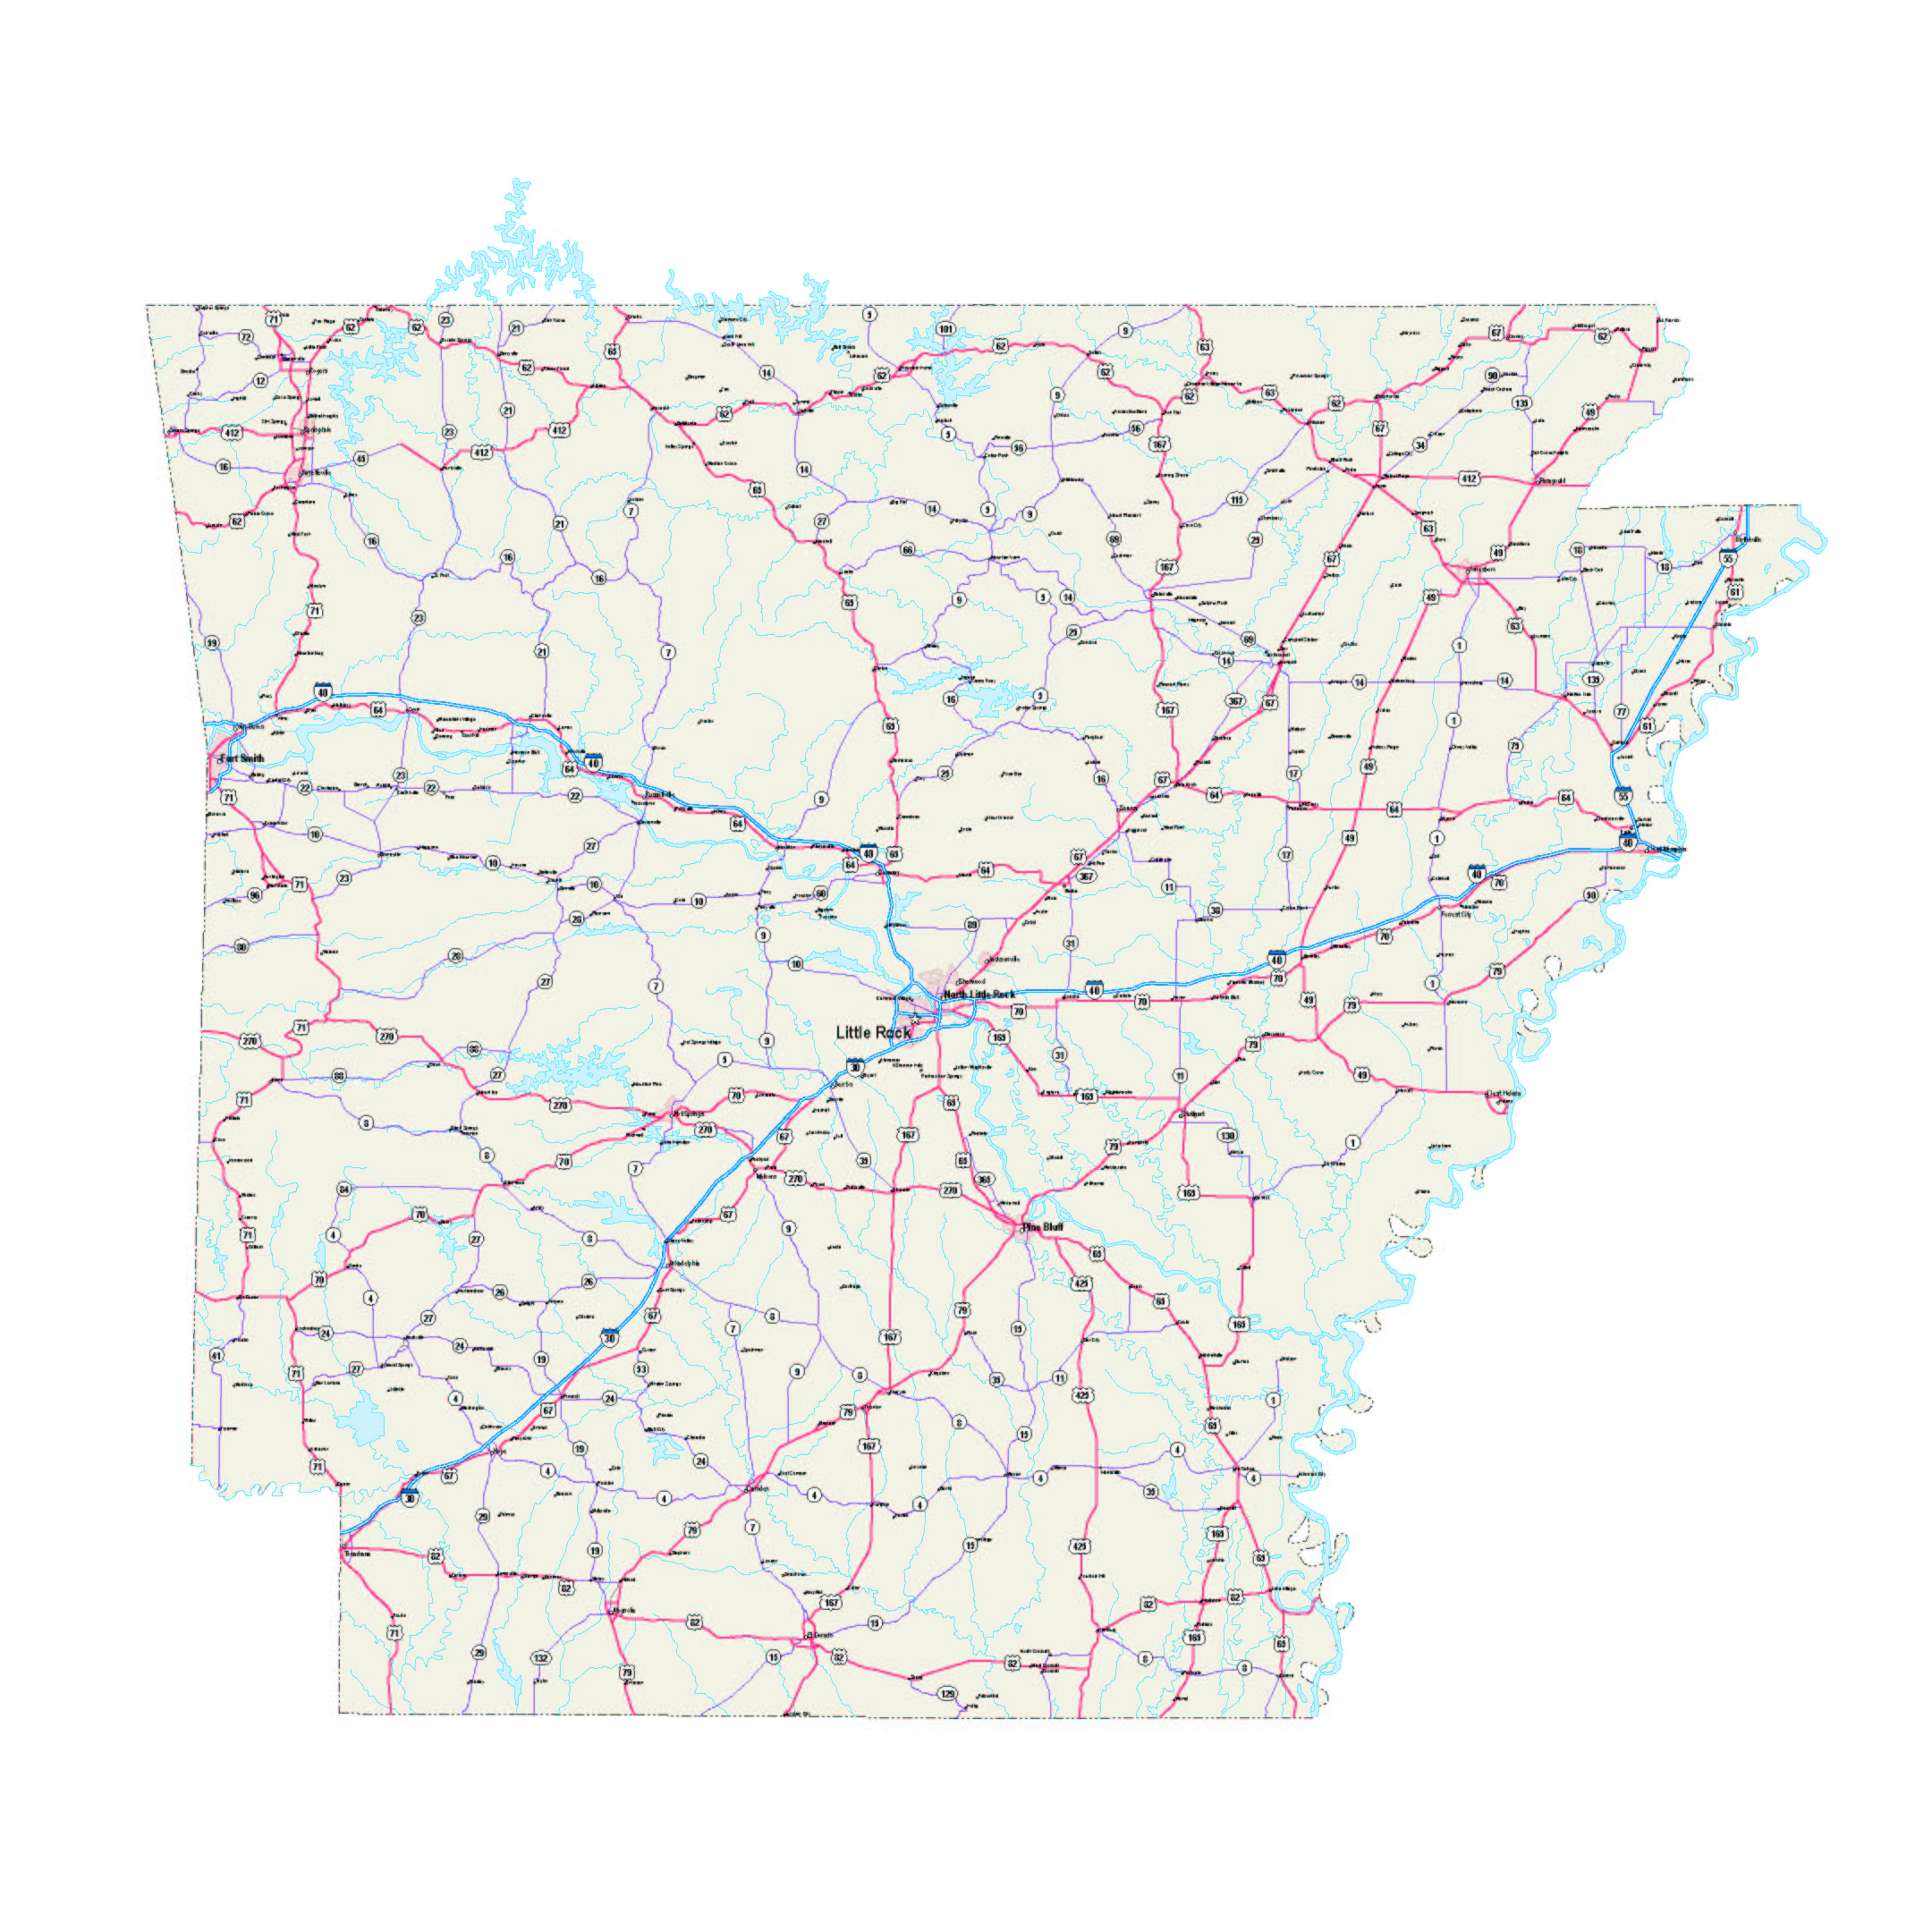 Arkansas Map - Arkansas Maps Free - Arkansas Printable Road Maps - Arkansas Road Map Printable